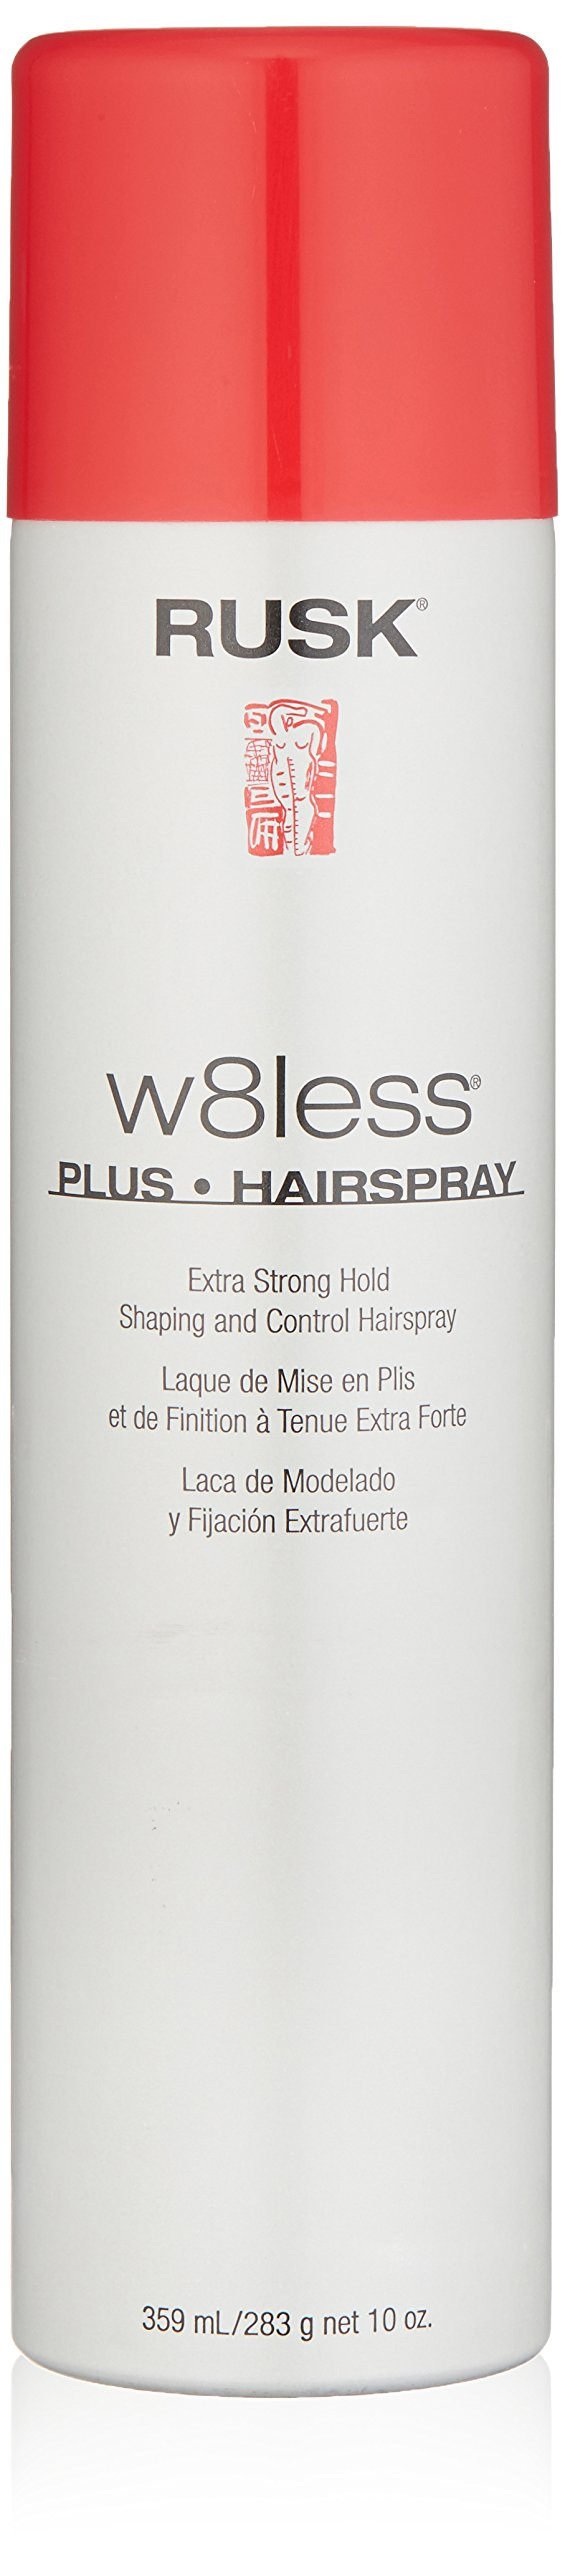 RUSK Designer Collection W8less Plus Extra Strong Hairspray, 10 oz.